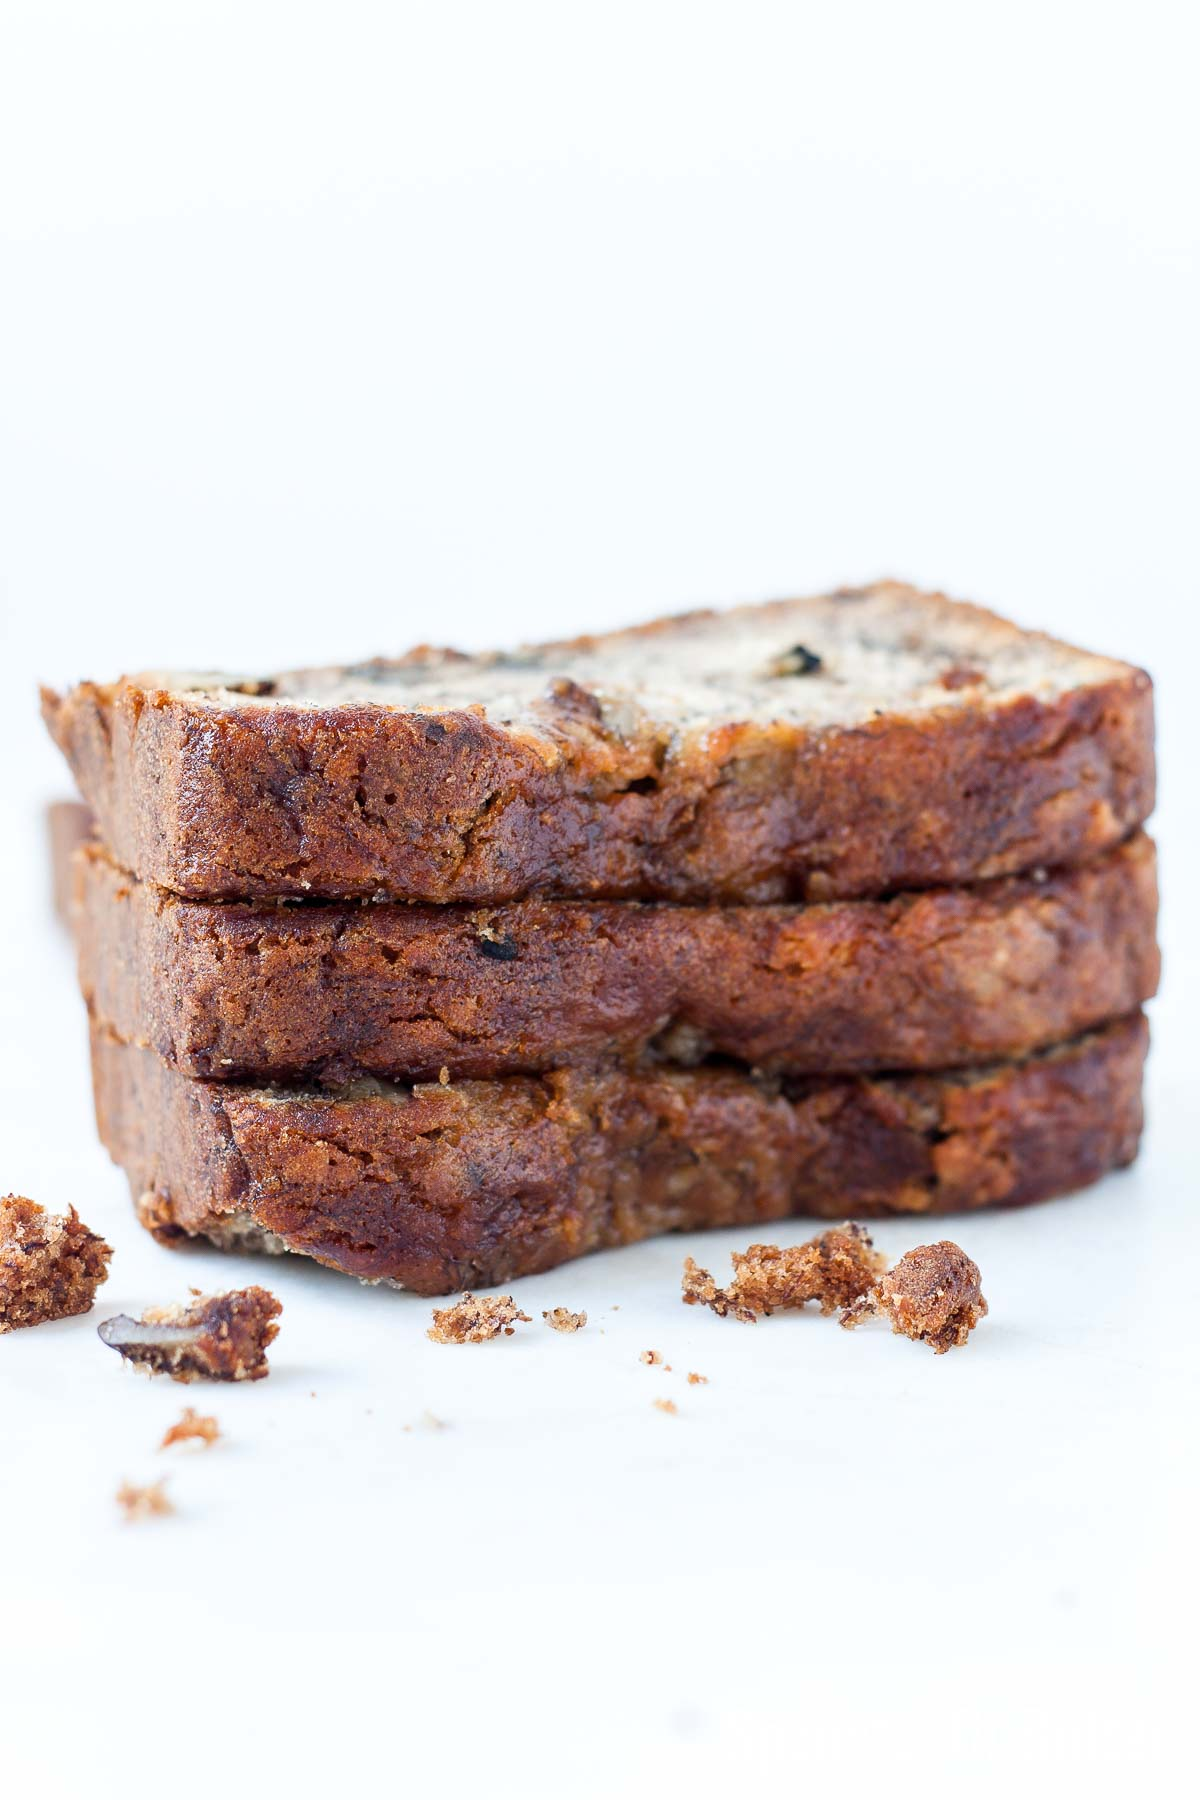 close-up view of stacked banana bread slices